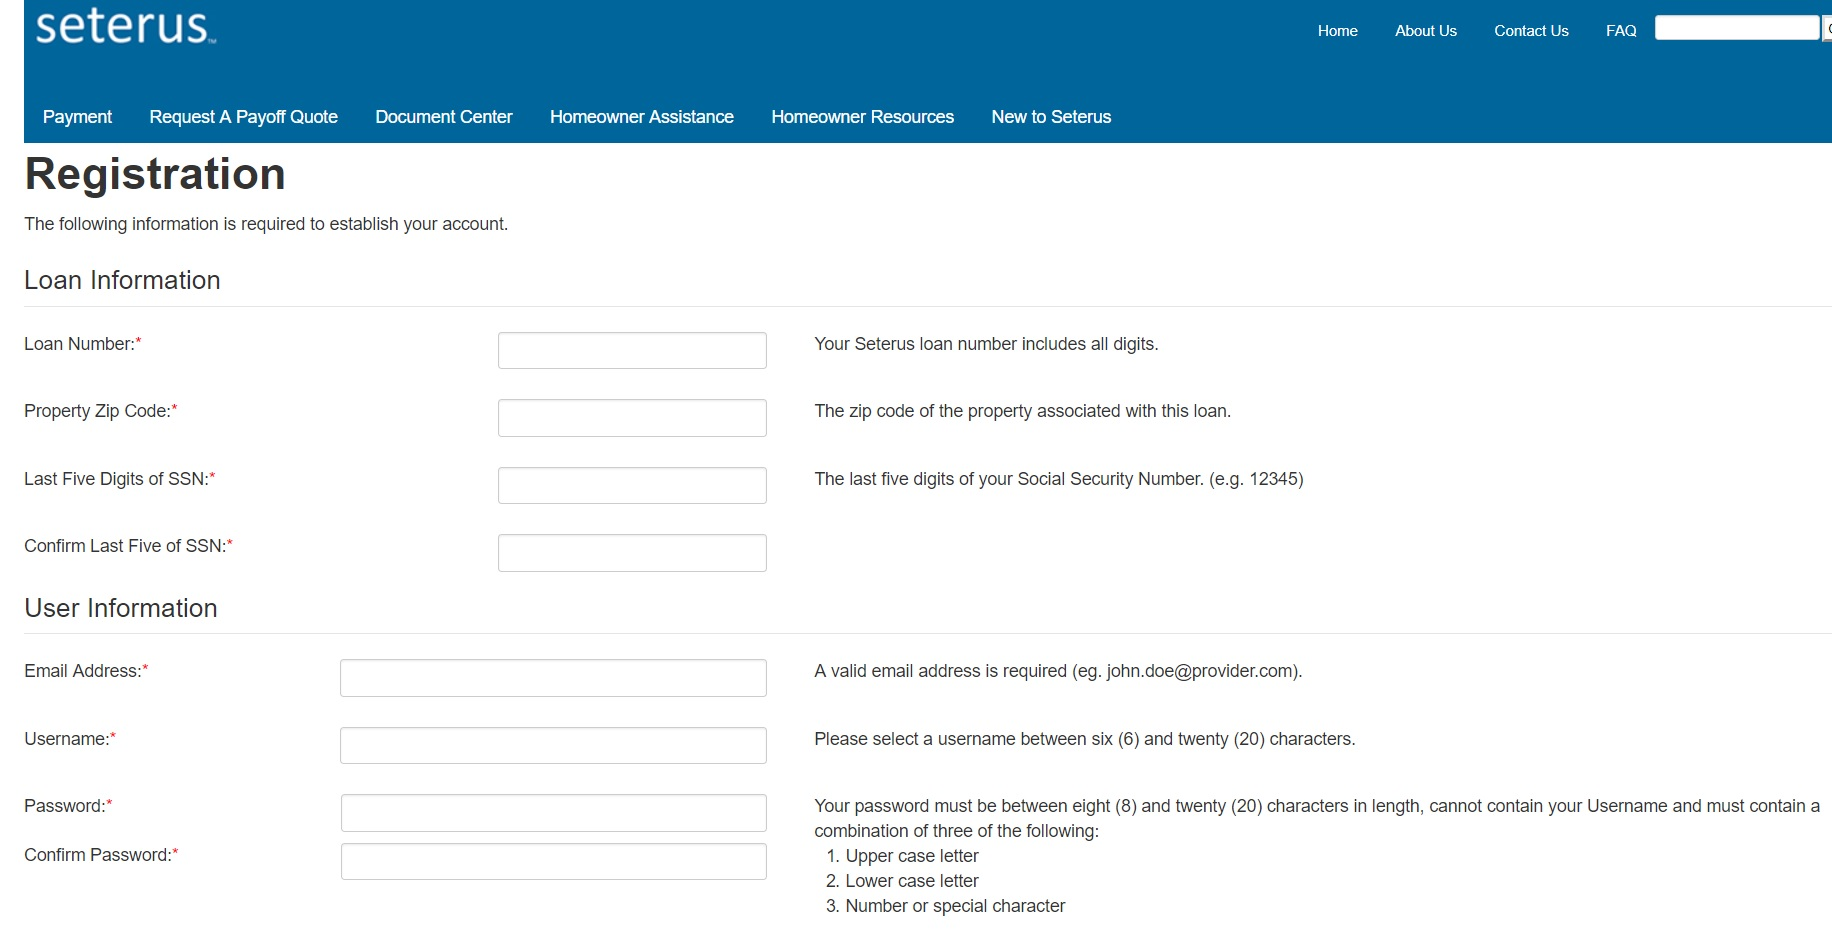 How to Register for a Seterus Account